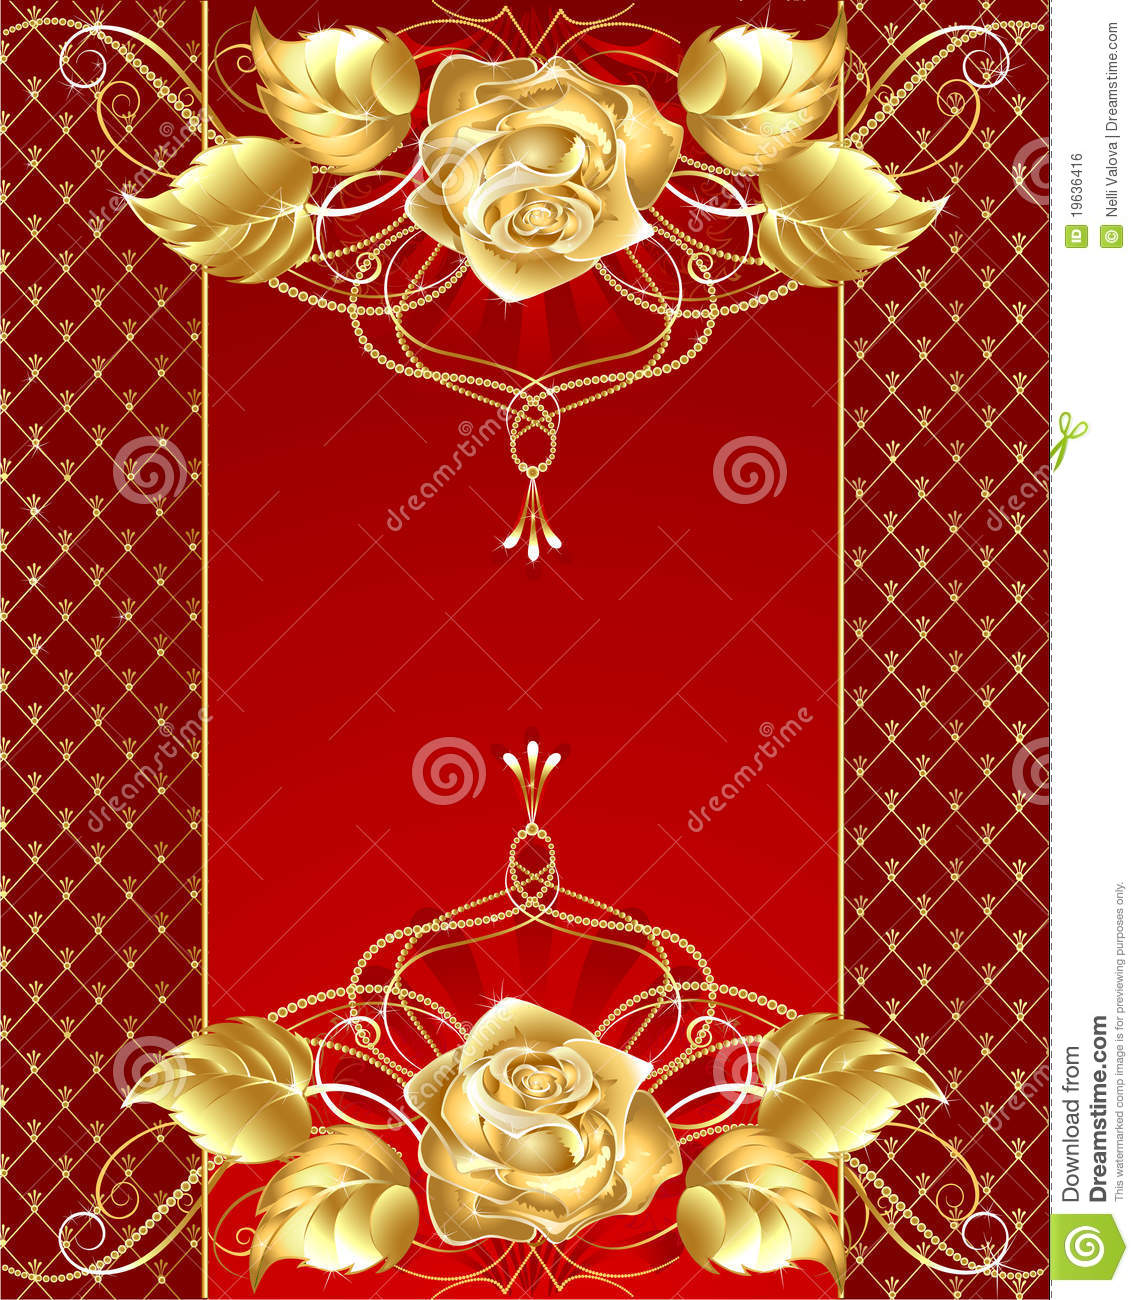 Jewelry design with a gold rose royalty free stock image for Red with gold